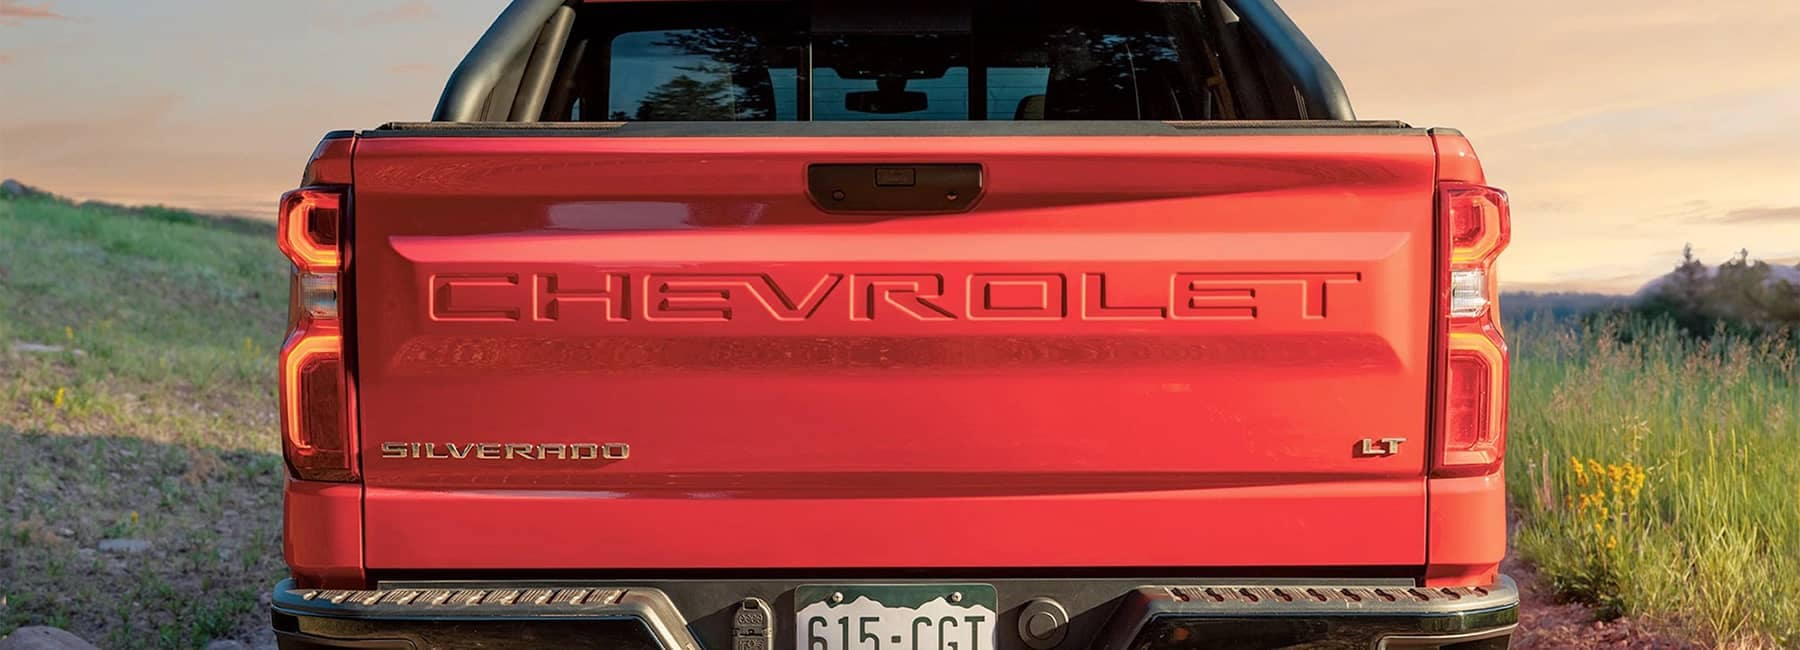 Silverado Crew Cab Short Bed LT Trail Boss in Red with Sport Bar and cover